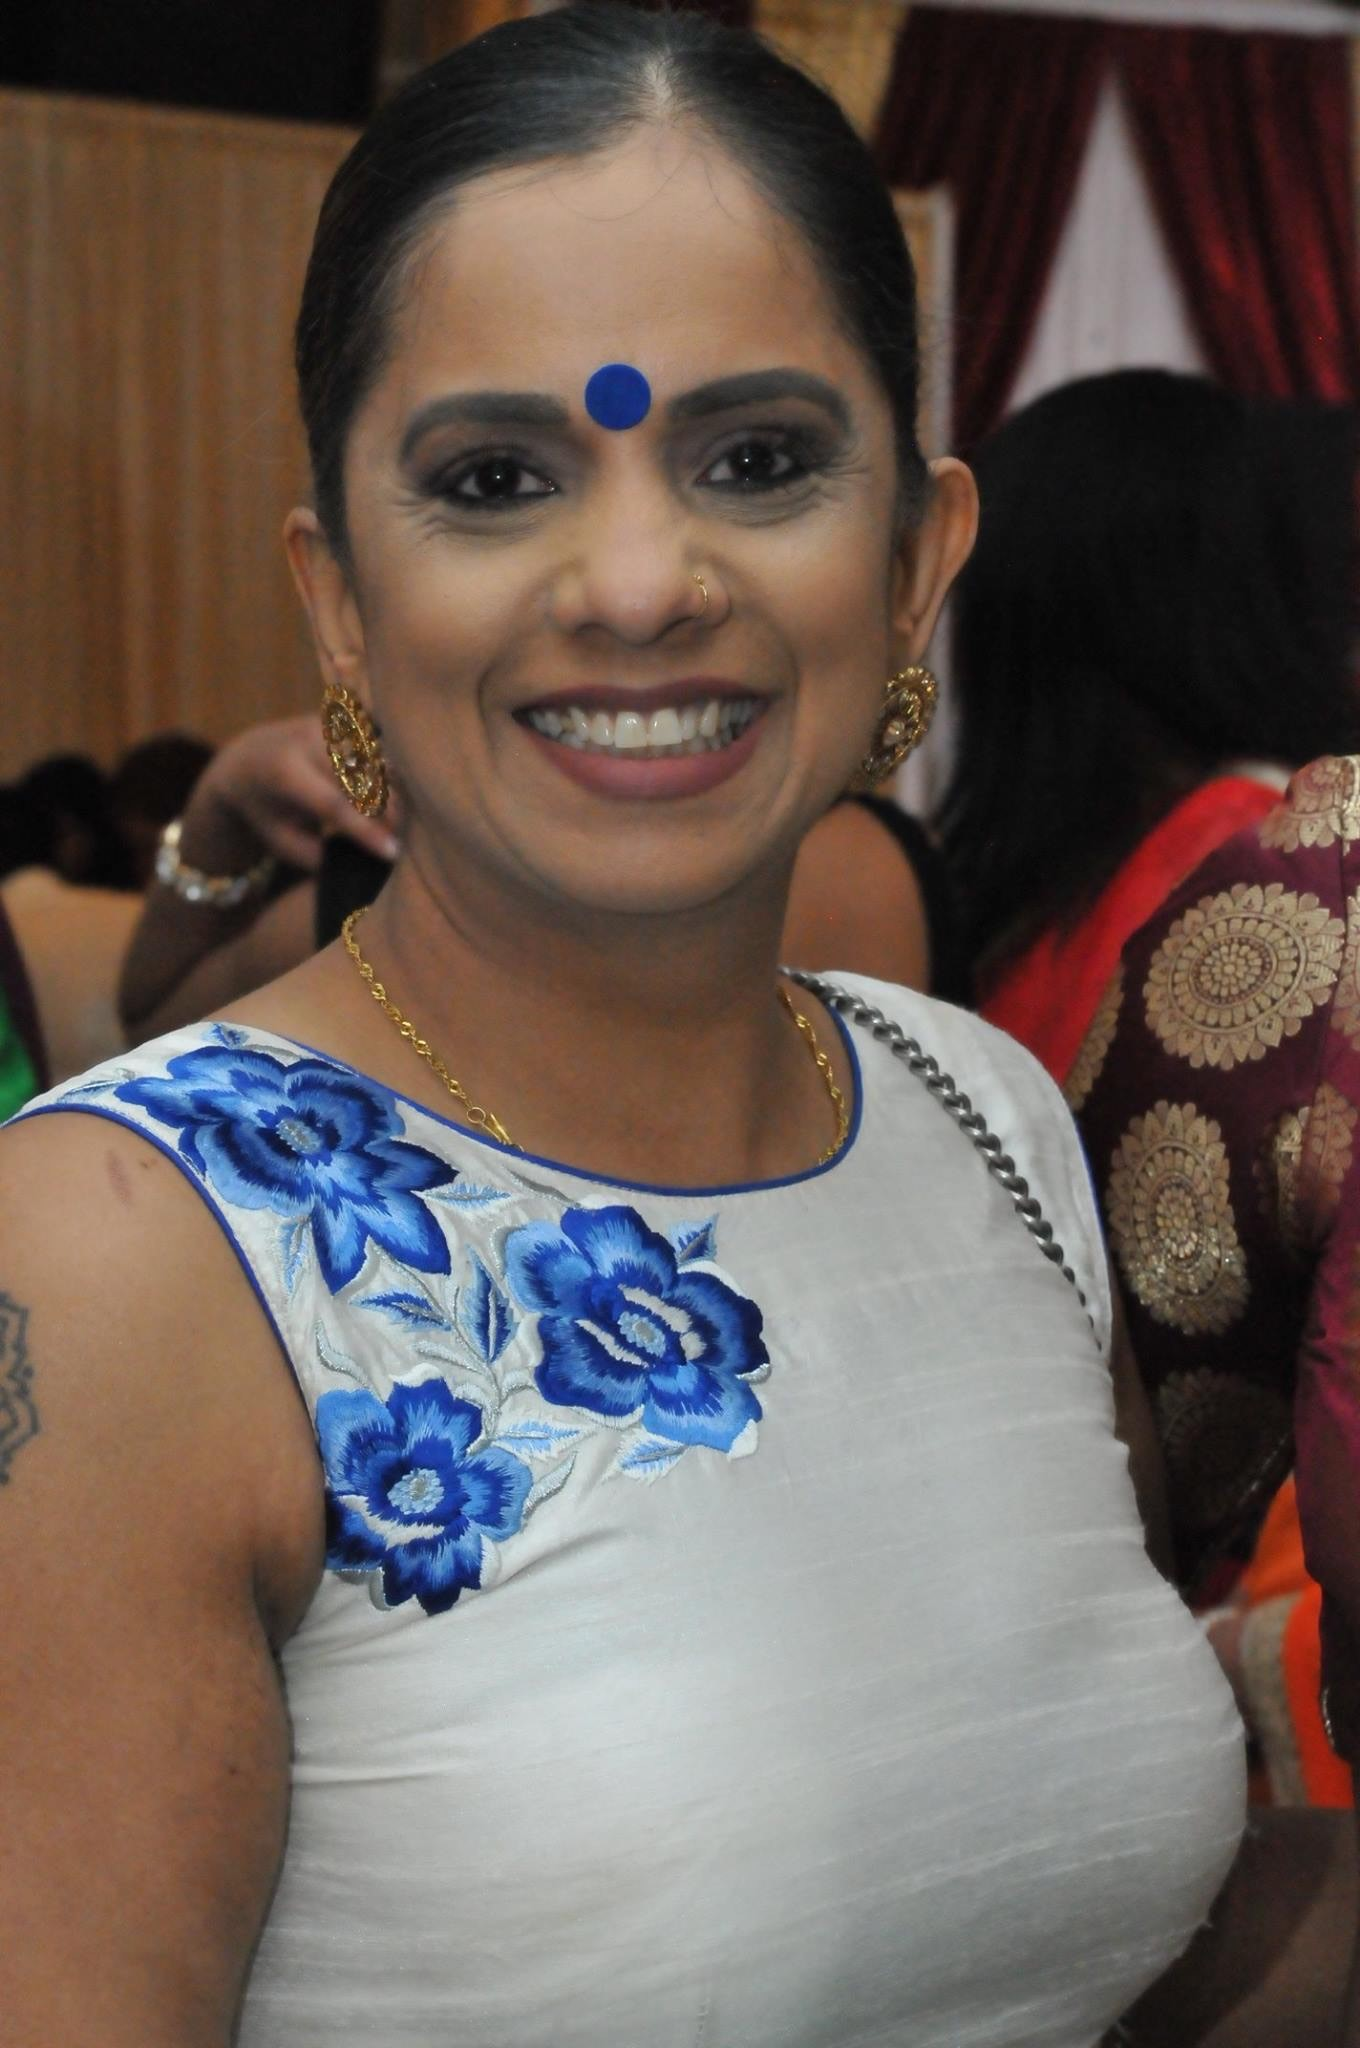 Missing person Nirla Sharma is shown smiling wearing a blue dress and gold jewlery. She has brown eyes, brown hair, and a medium complexion.